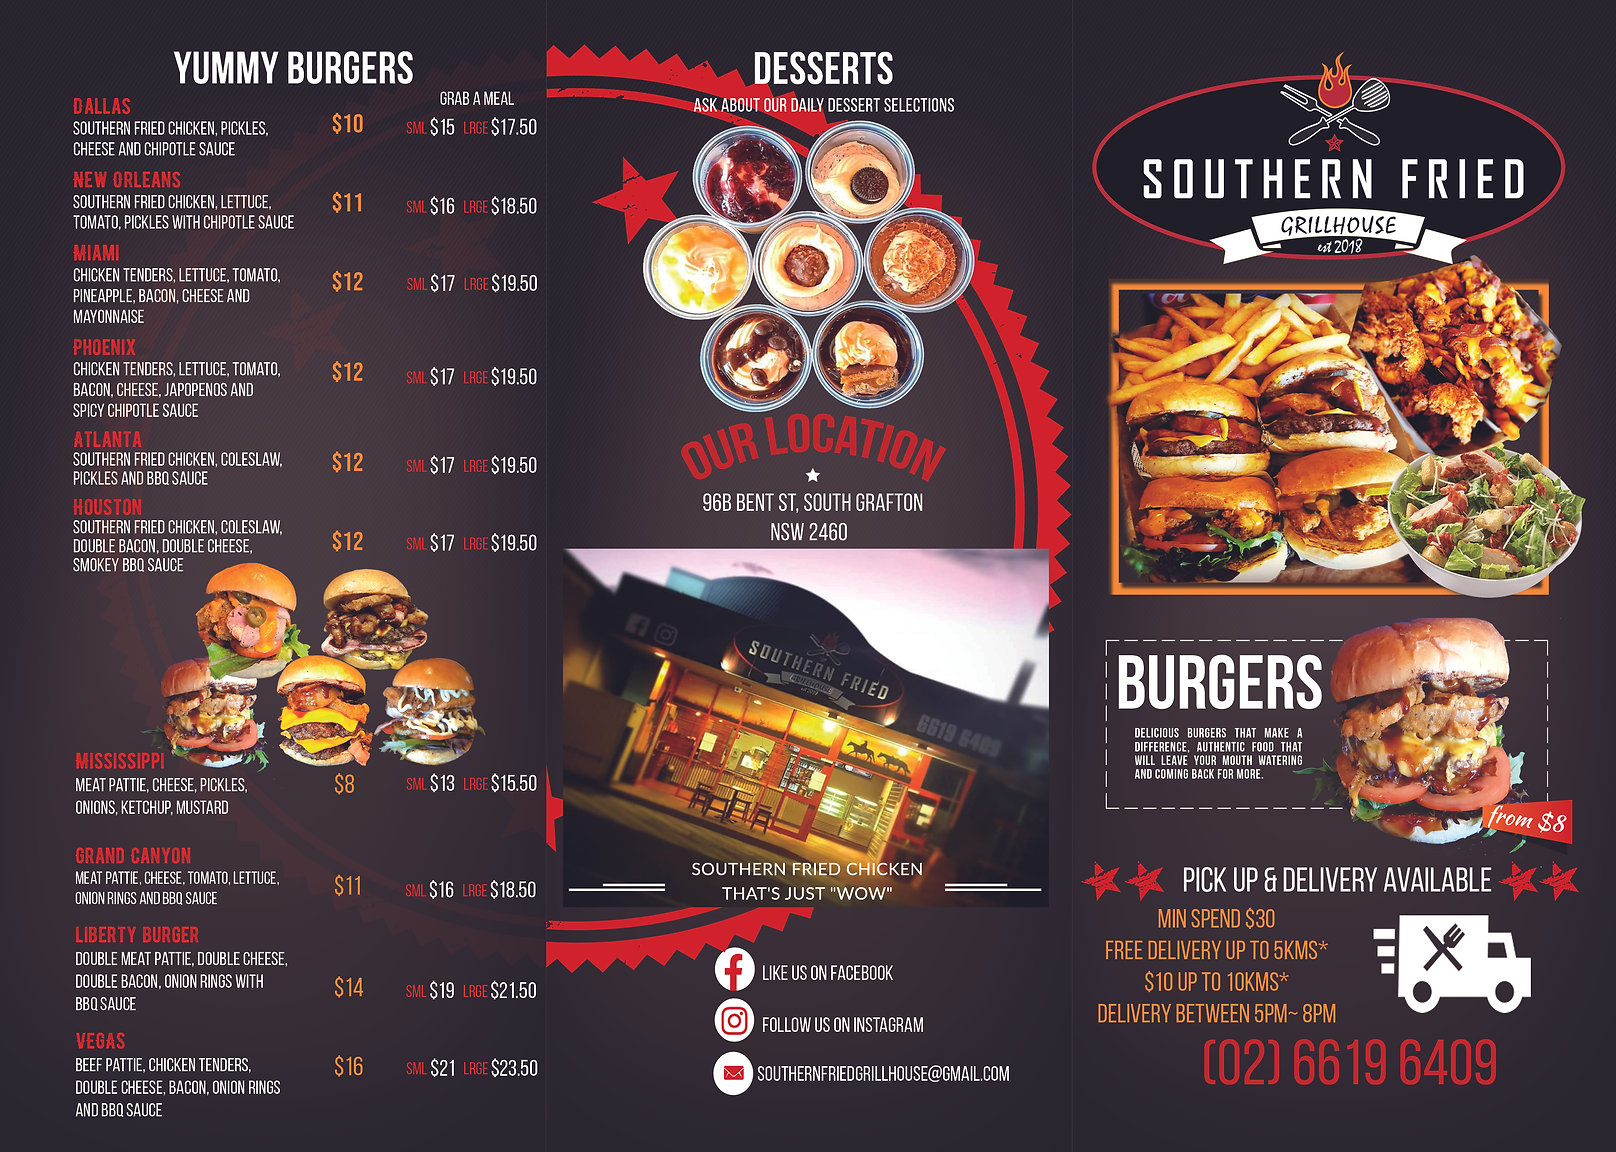 Southern Fried Grill House Menu.jpg